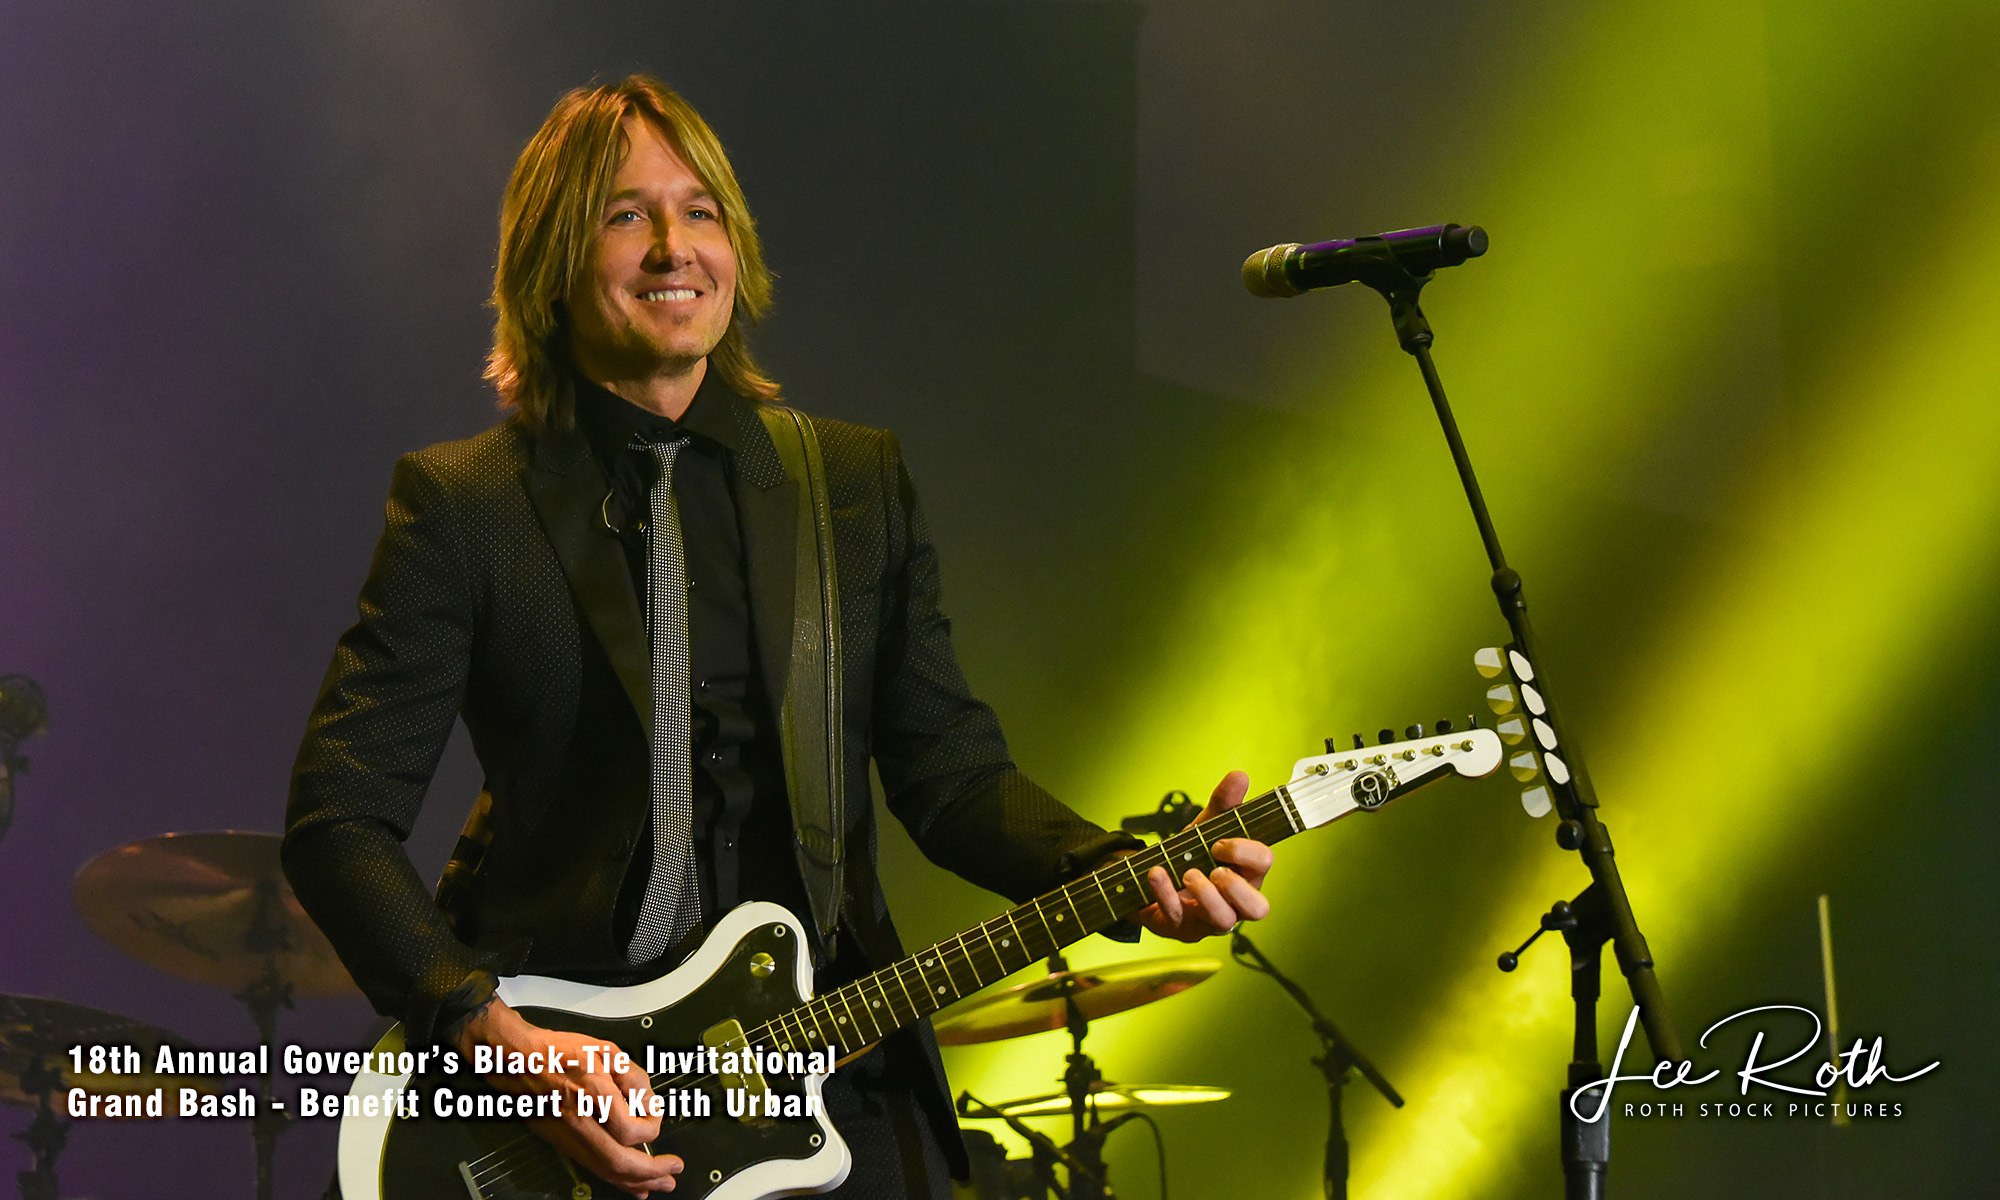 18th Annual Governor's Black Tie Invitational Benefit Concert by Keith Urban